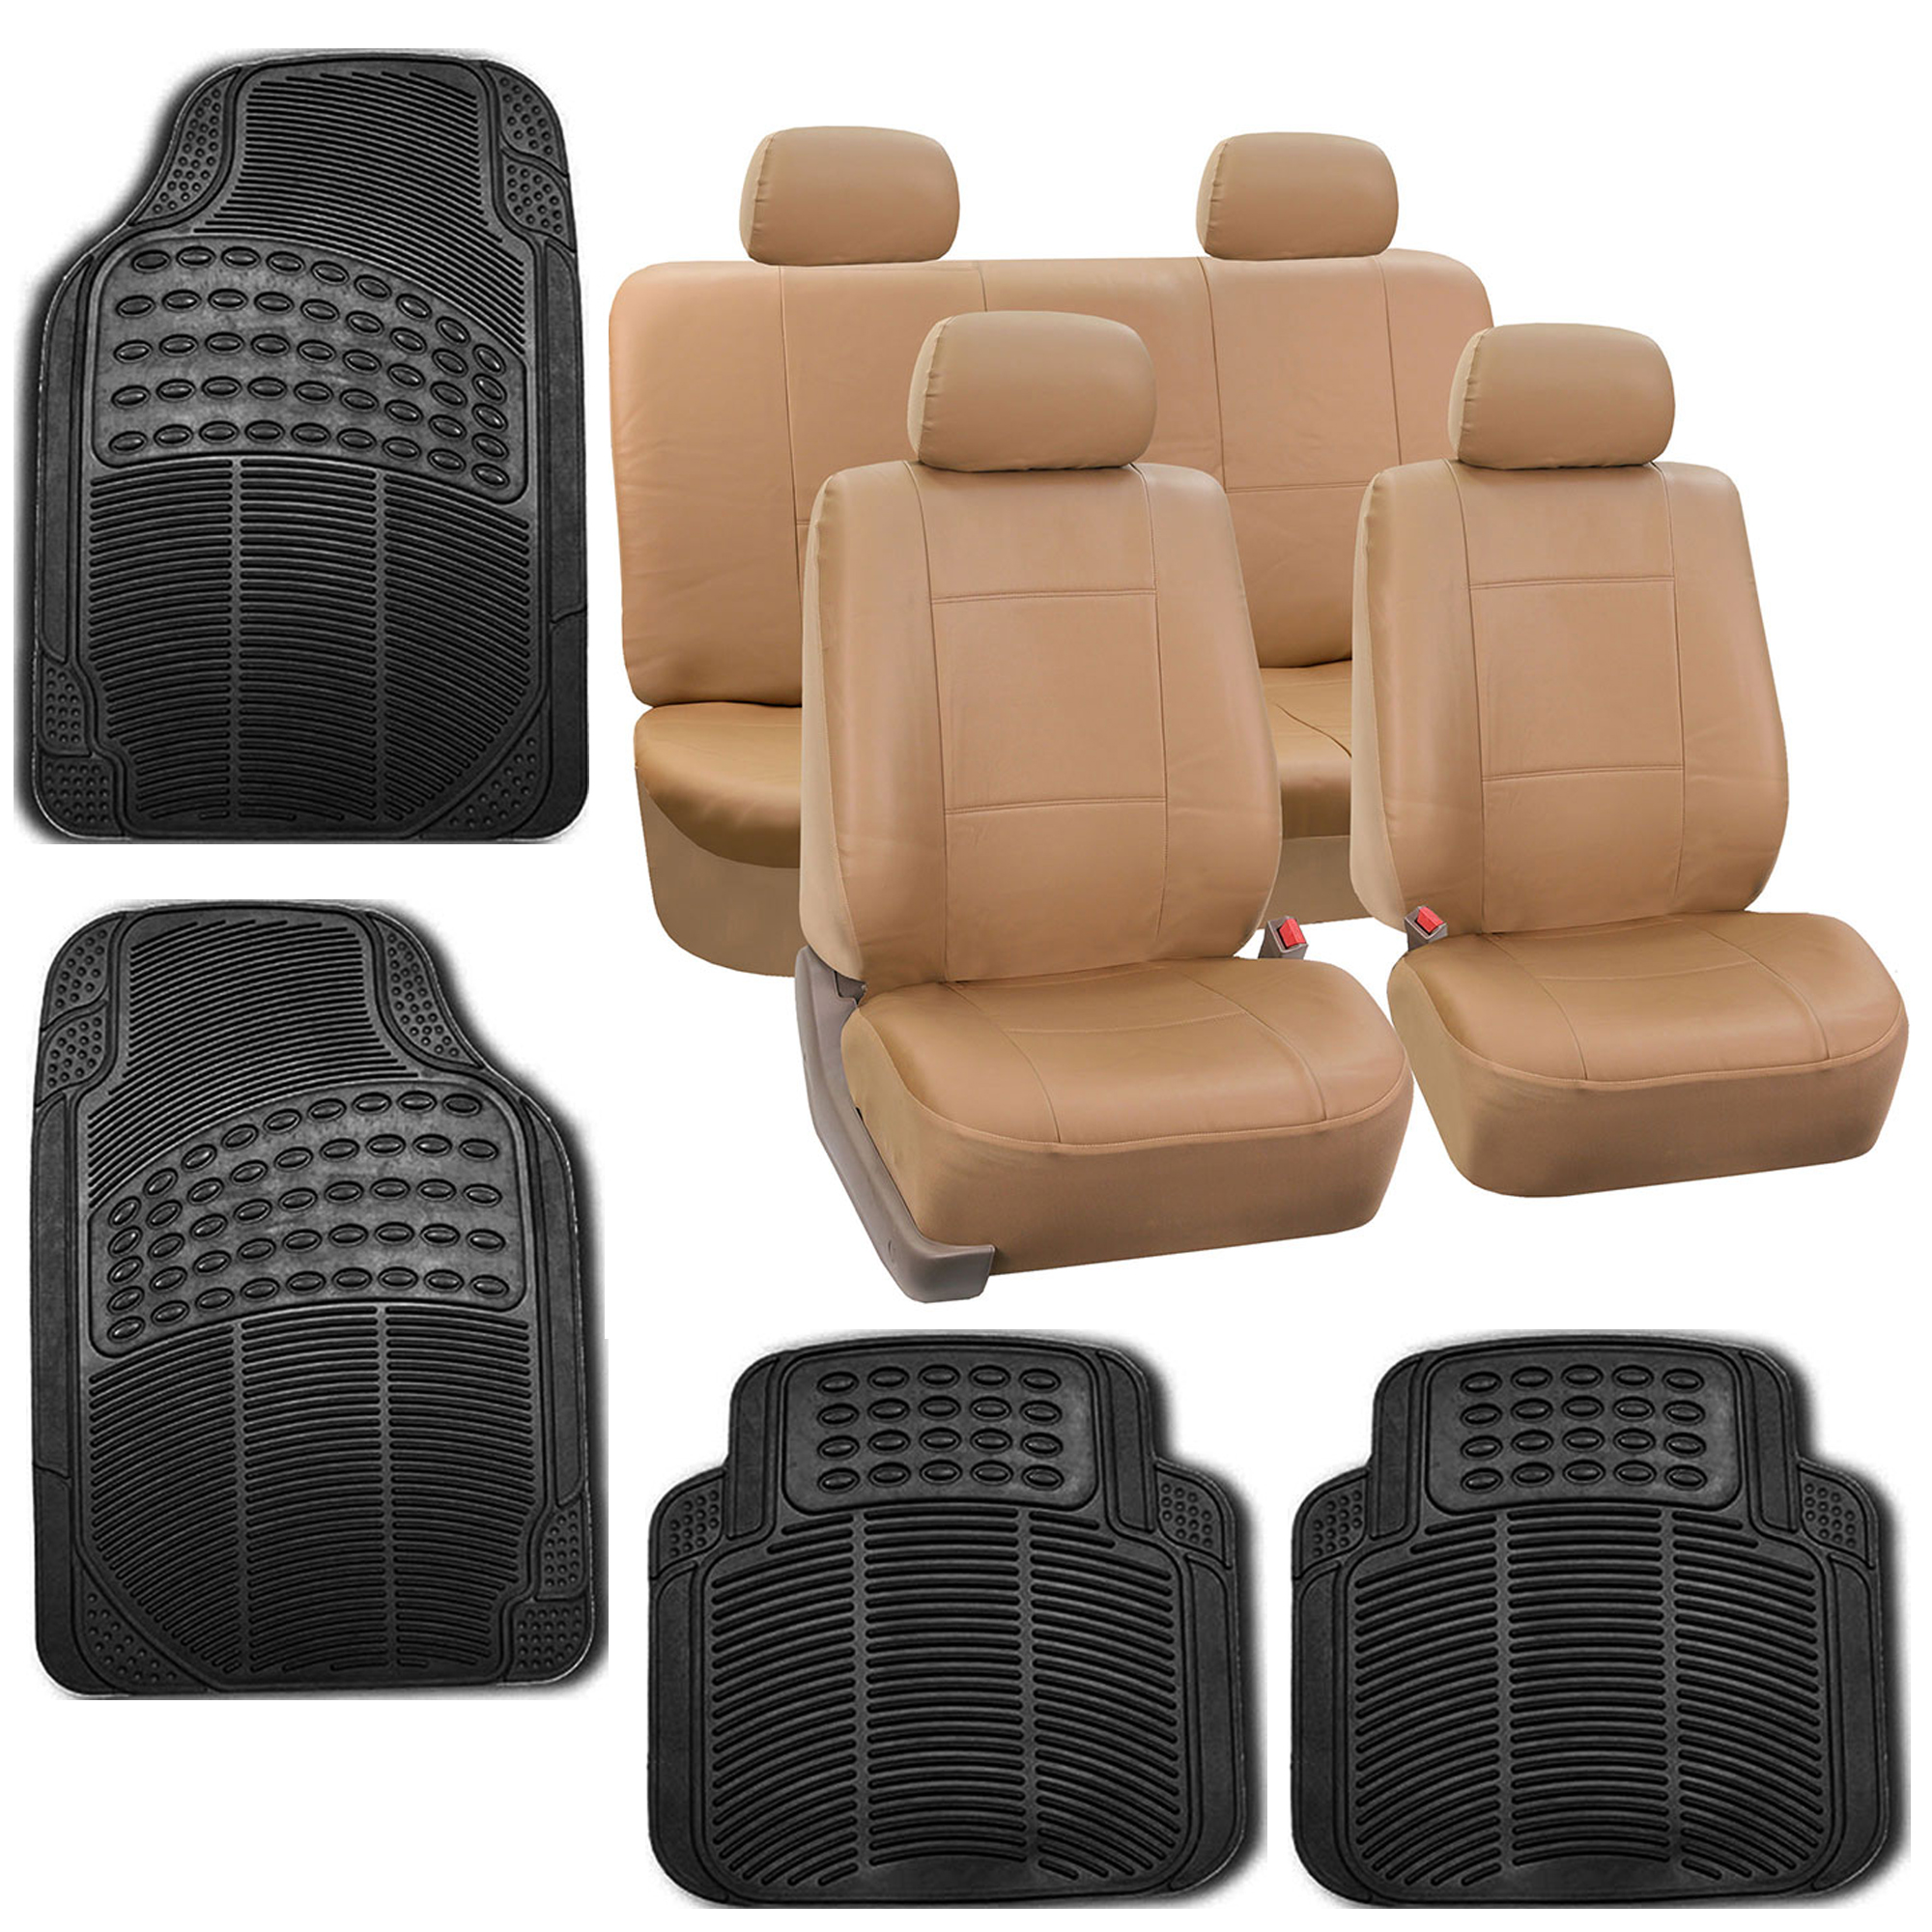 faux leather gripper chair cushions thrive nixon tan black car seat cover set headrests floor